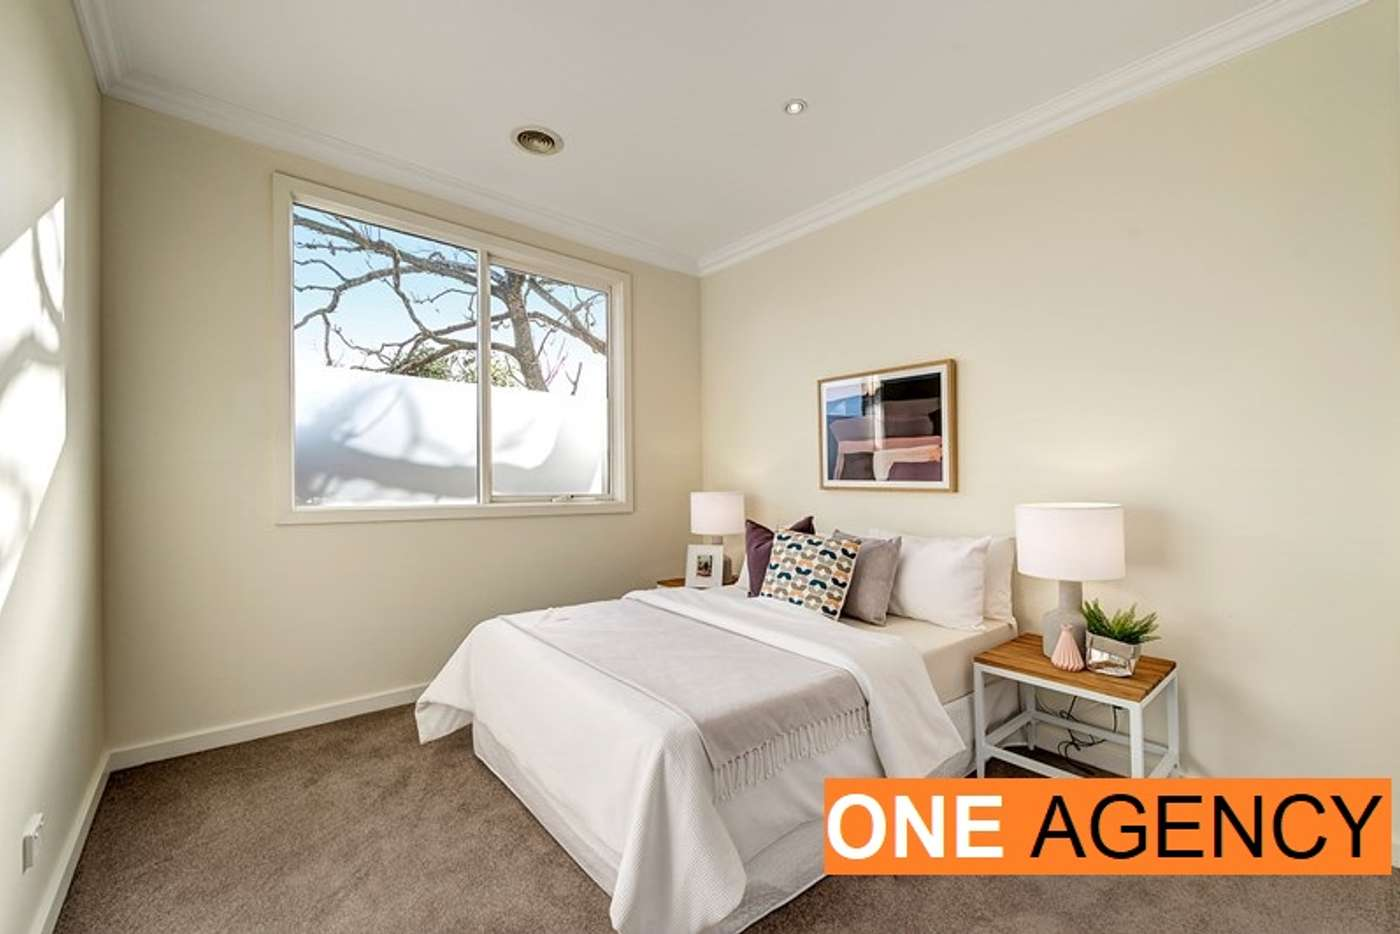 Sixth view of Homely house listing, 3/5 Blair Street, Bentleigh VIC 3204